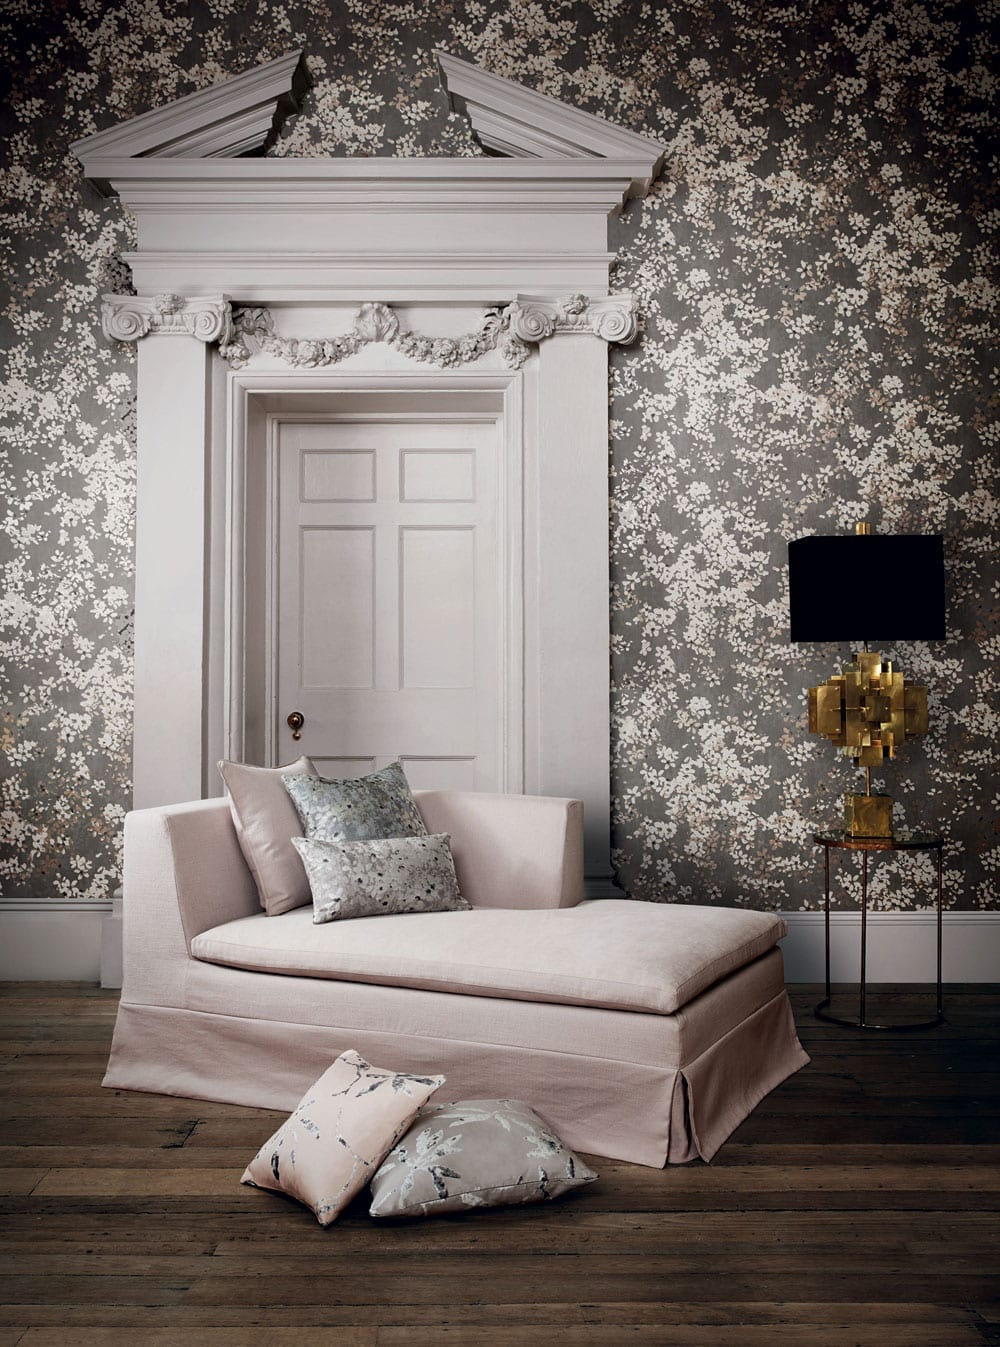 Romo Floris Wallpaper Collection